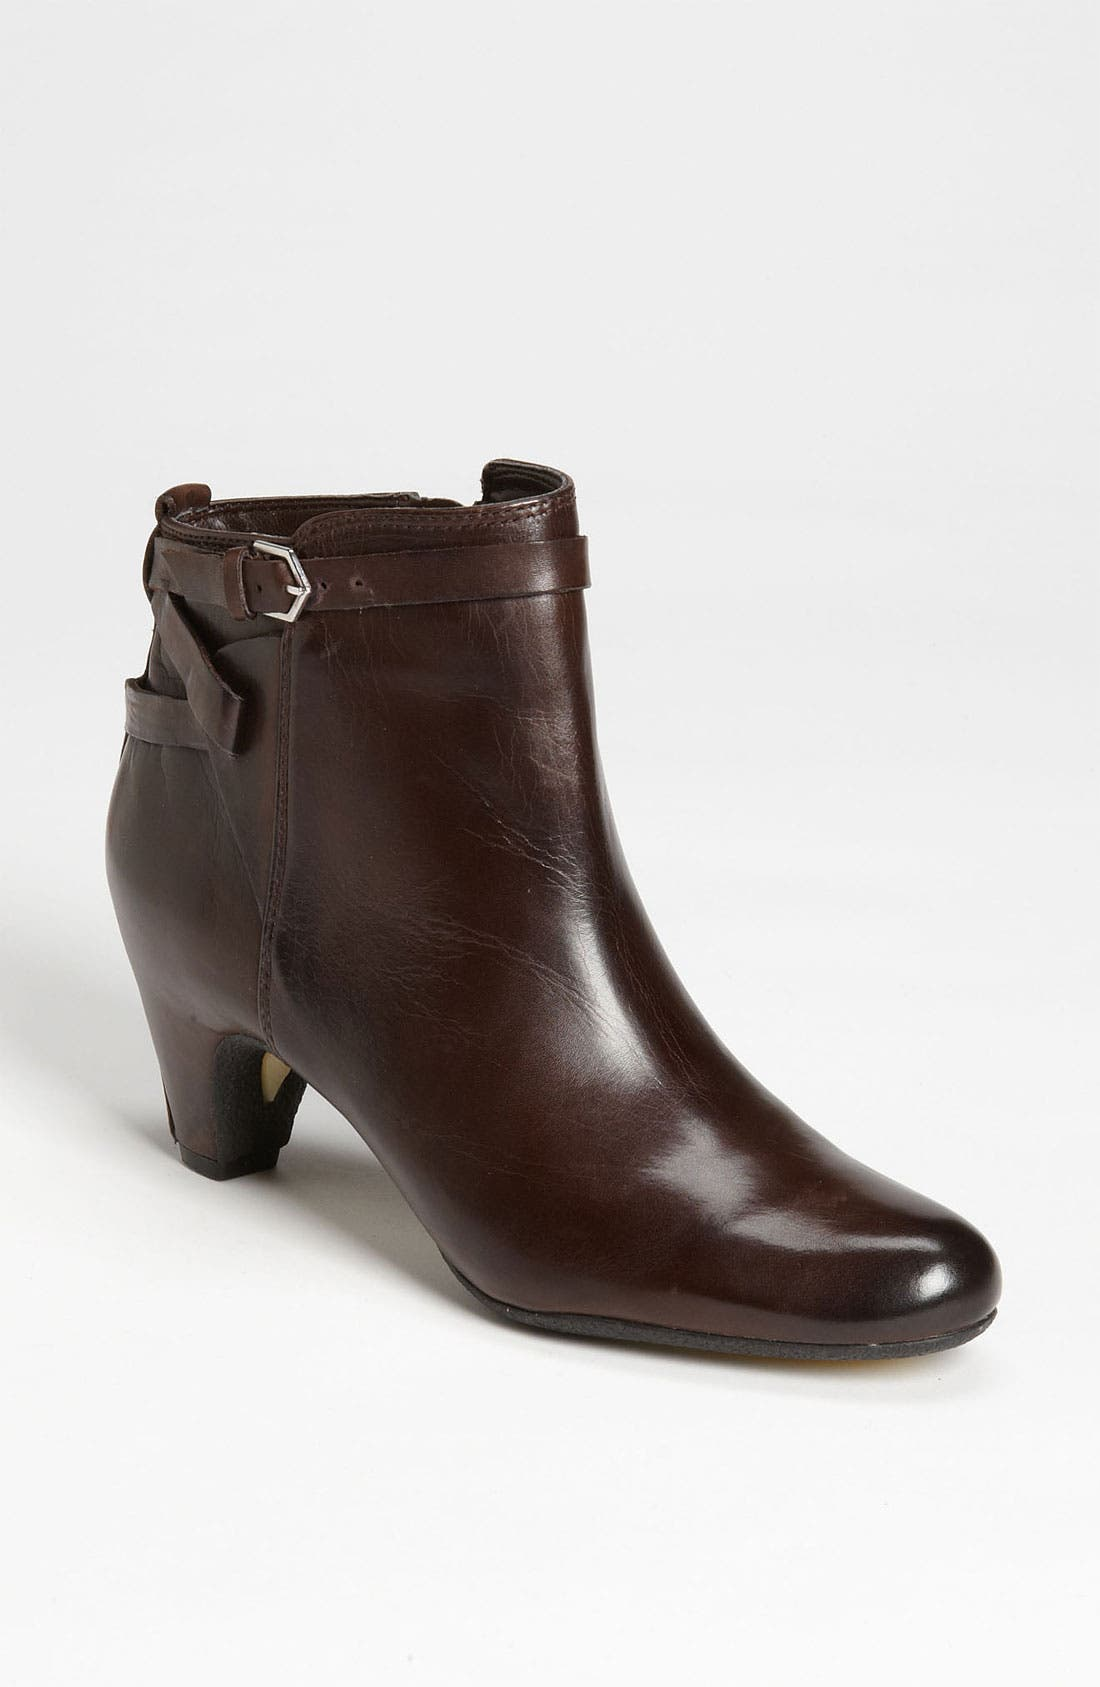 Alternate Image 1 Selected - Sam Edelman 'Maddox' Boot